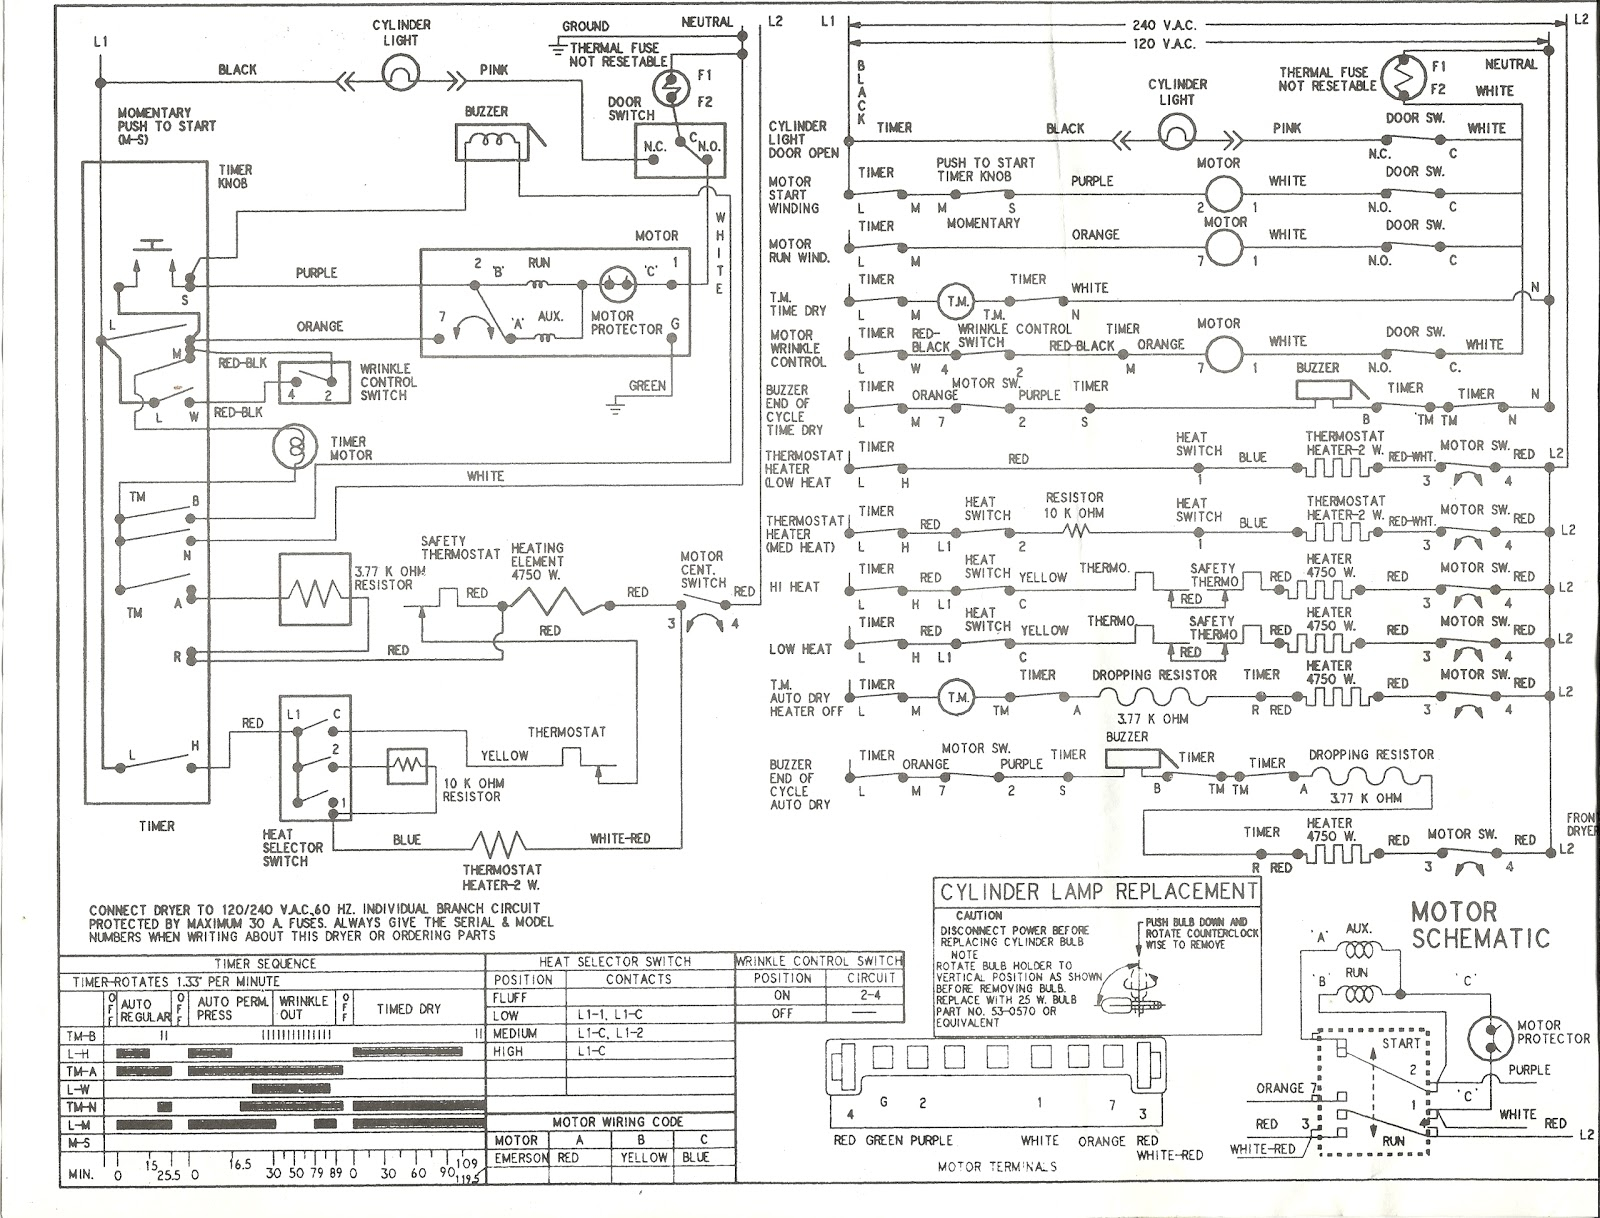 kenmore dryer power cord wiring diagram Collection-Kenmore Series Electric Dryer Wiring Diagram Schematic 2-a